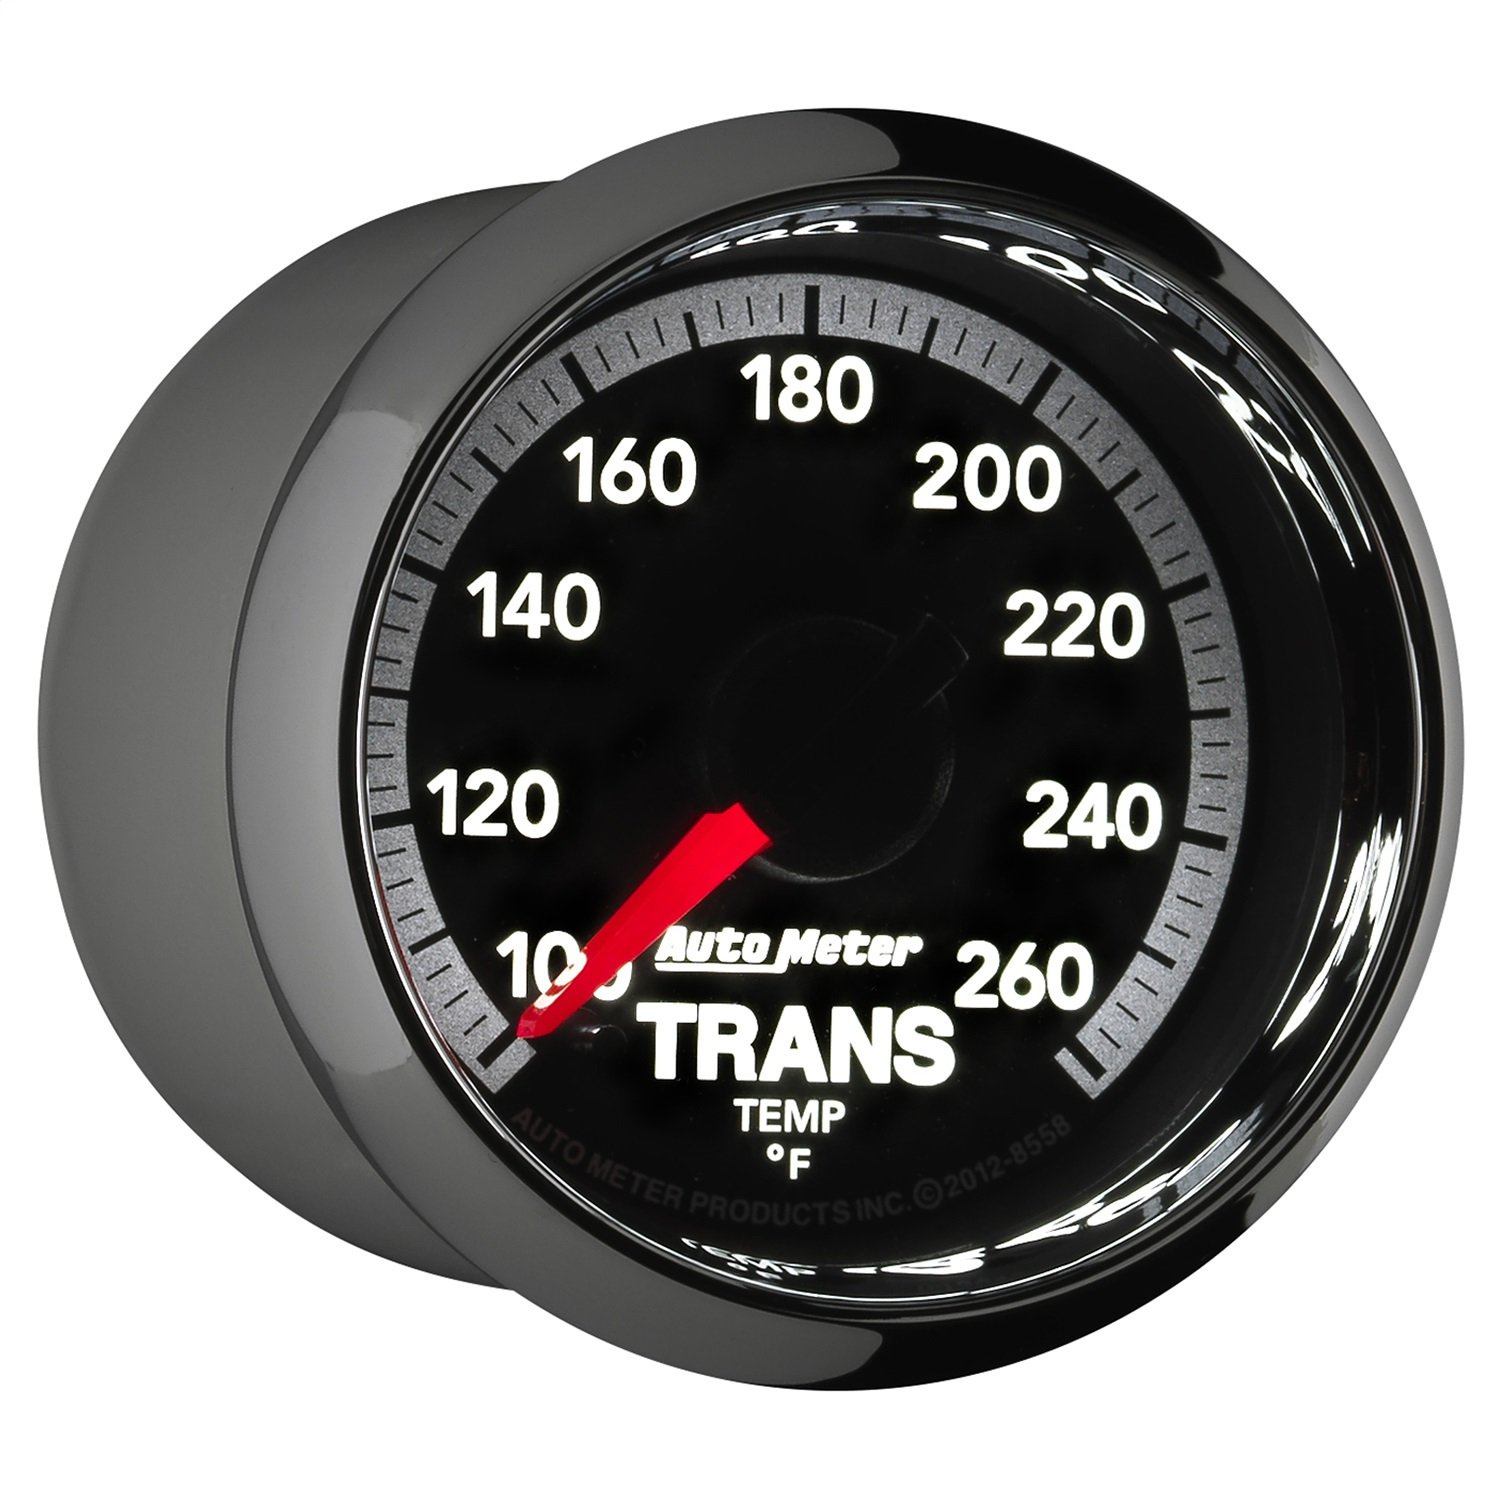 Auto Meter 8558 Factory Match 2-1/16'' Electric Transmission Temperature Gauge (100-260 Degree F, 52.4mm) by Auto Meter (Image #2)